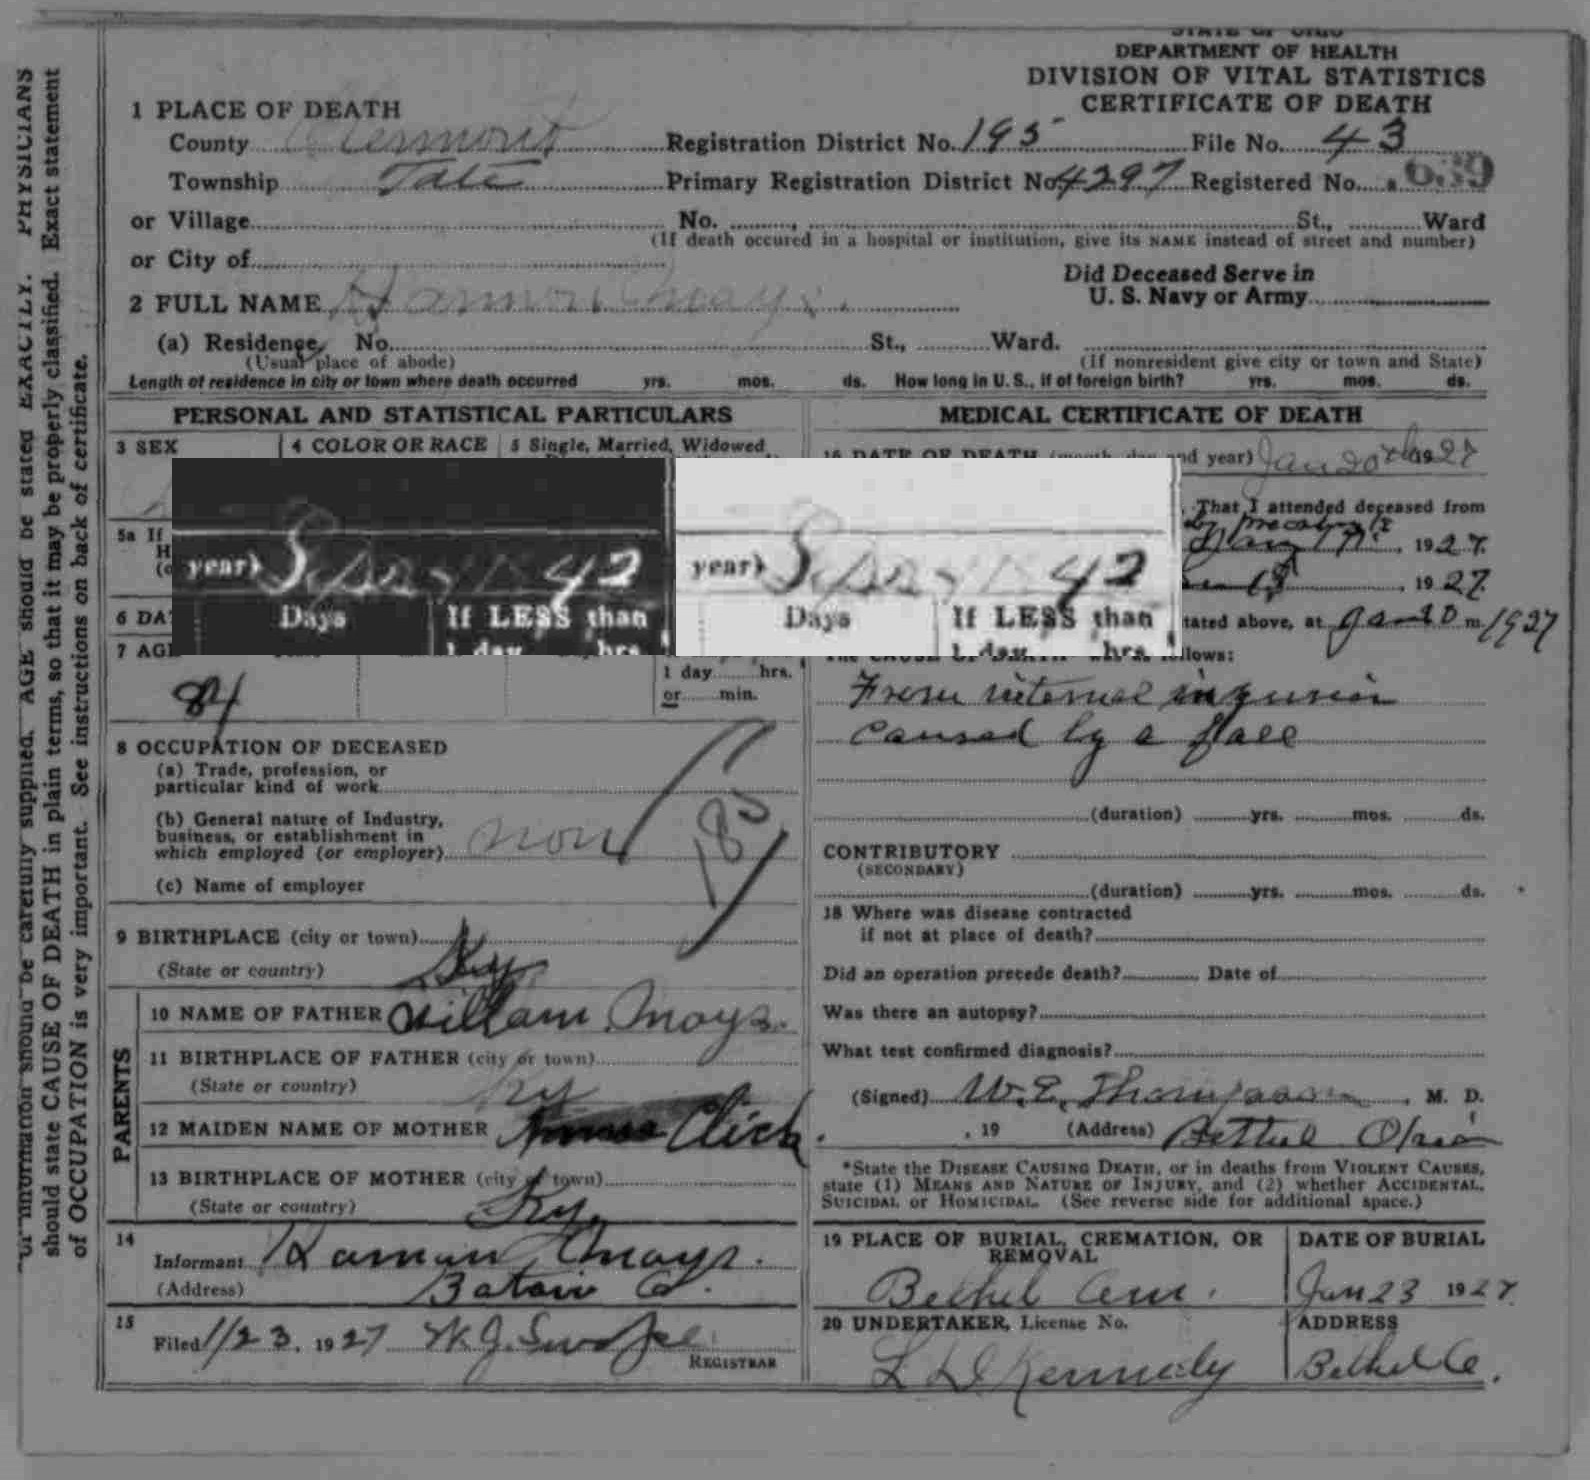 The misadventures of a genealogist the moore mays blog ohio department of health division of vital statistics death certificate 639 1927 harmon mays digital image aiddatafo Image collections